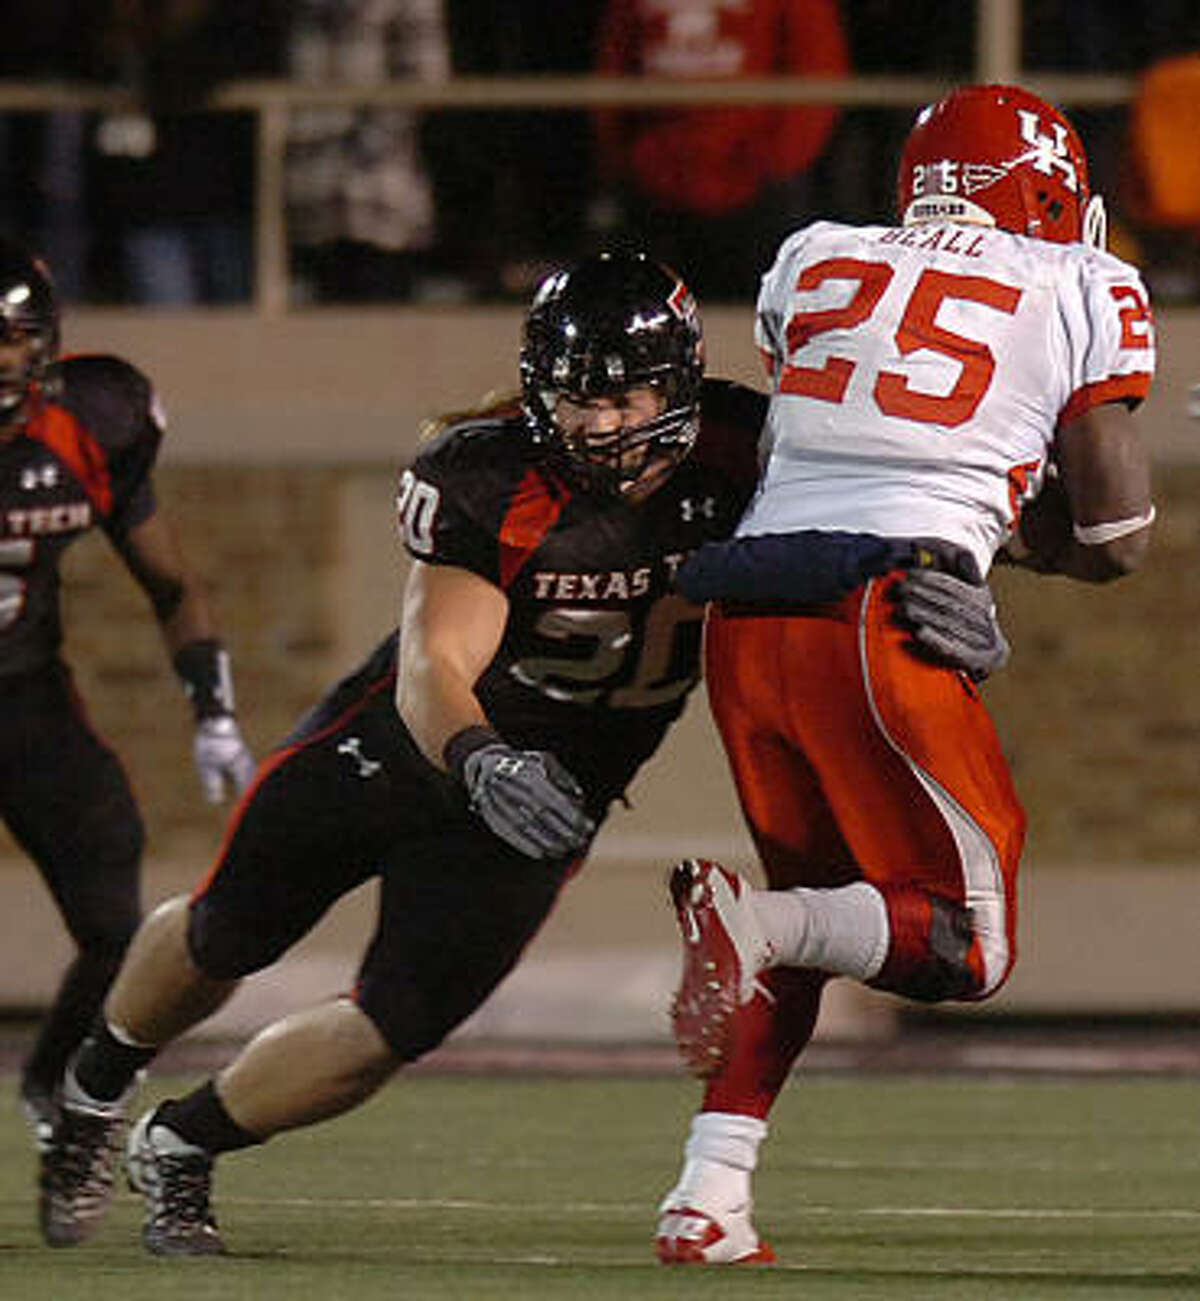 Texas Tech's Bront Bird, left, brings down UH running back Bryce Beall during Saturday's game.